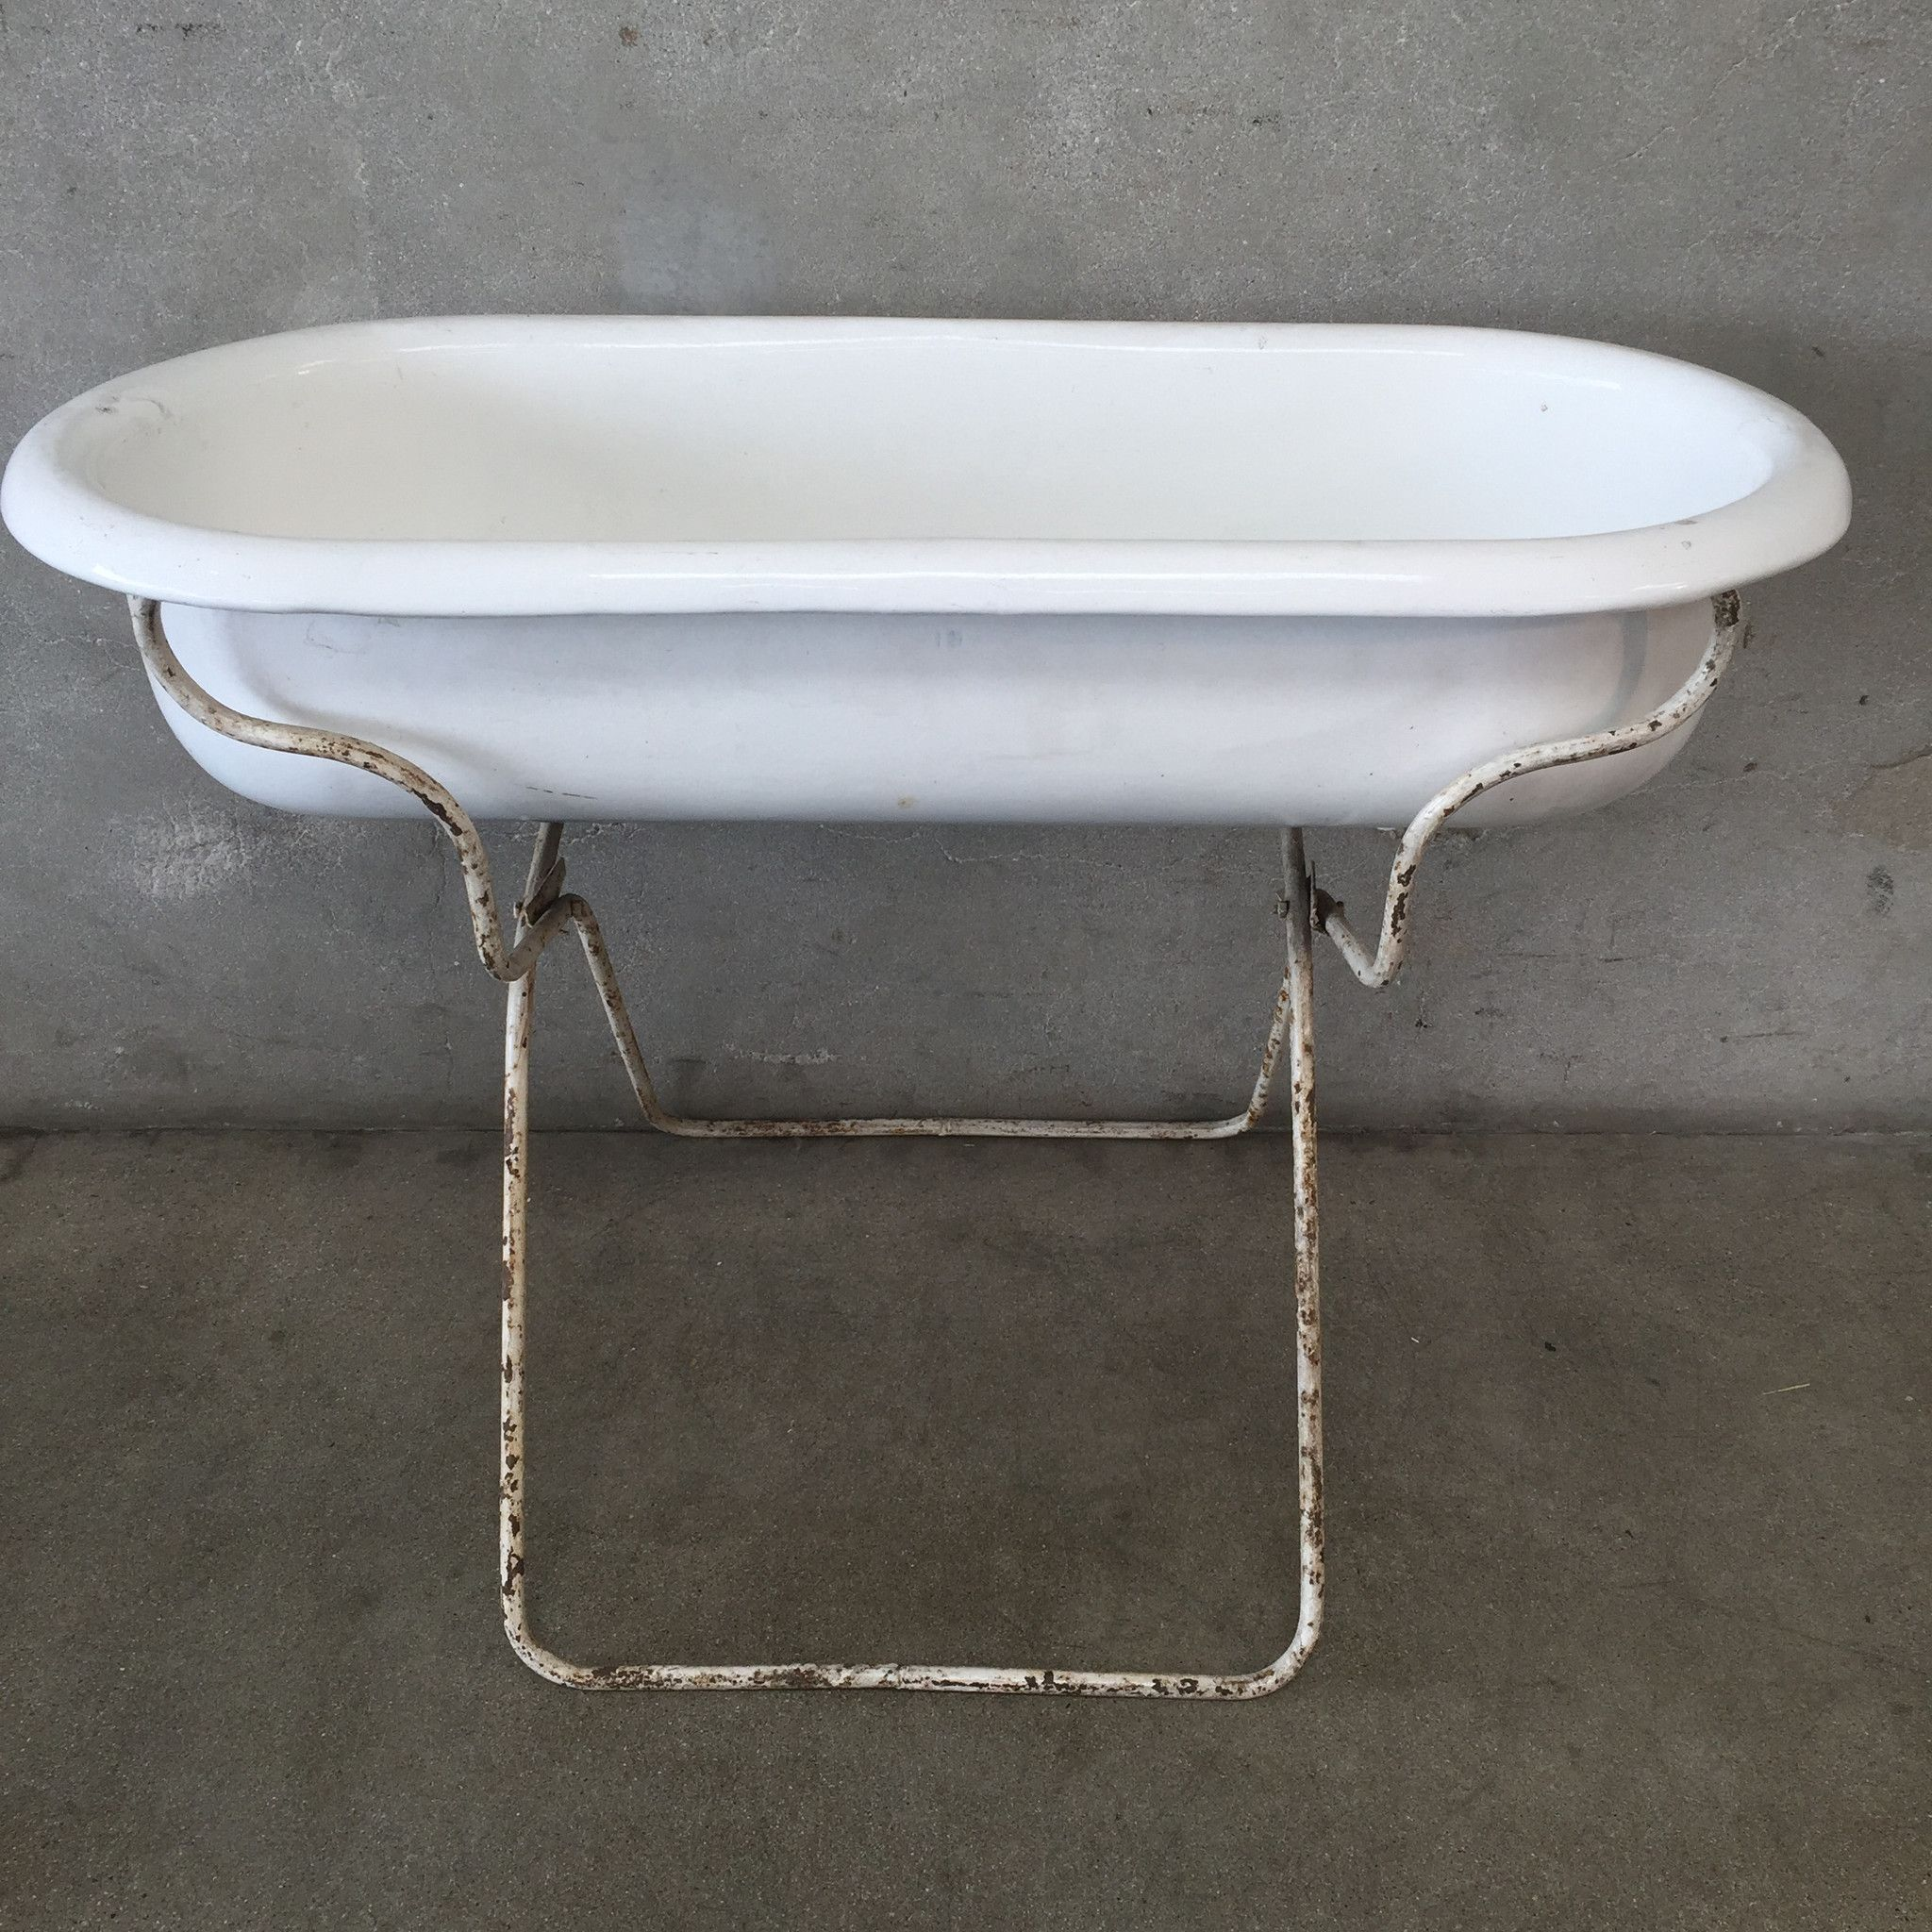 European Baby Bath Tub on Stand 27 1/2\